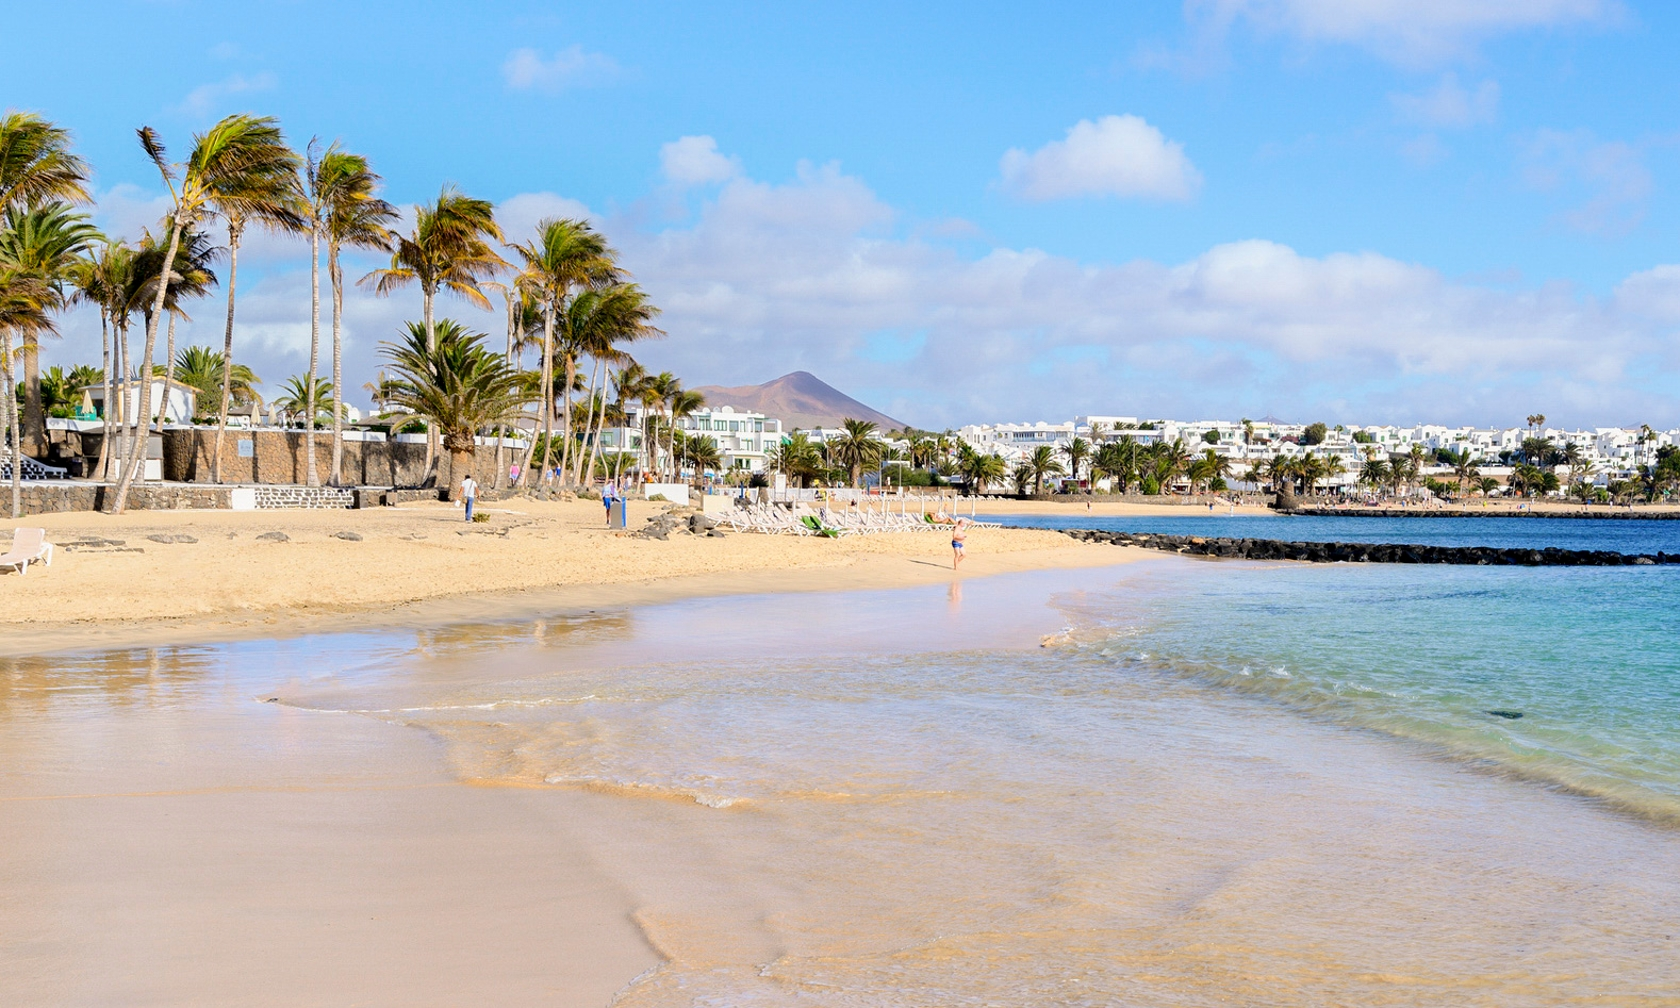 Holiday rentals in Costa Teguise